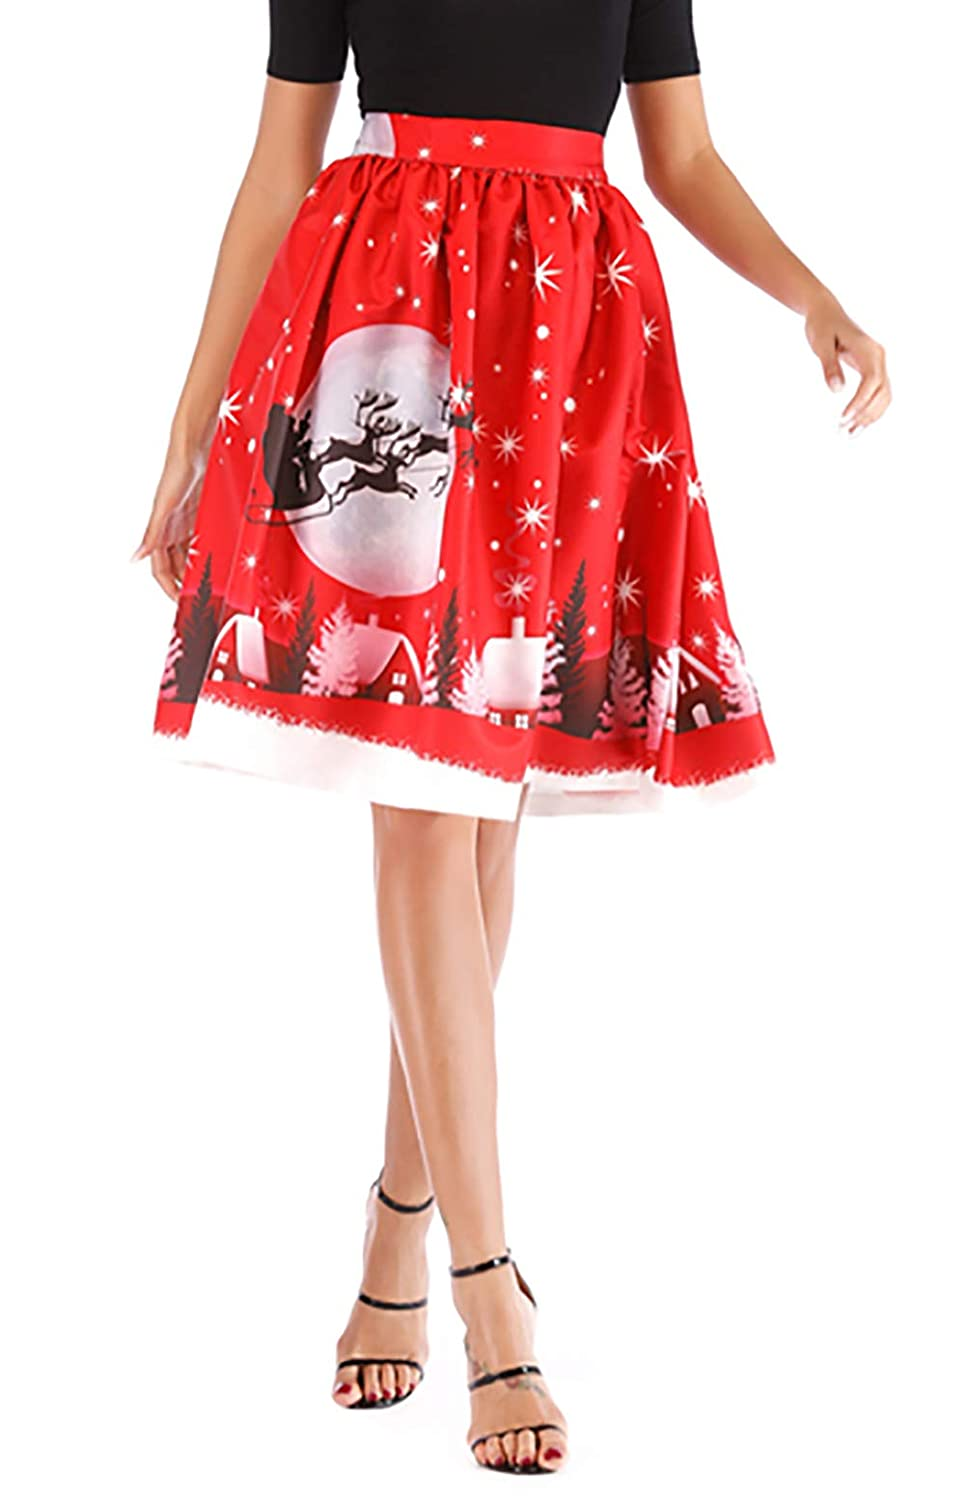 Christmas Red Hanlolo Women's Floral Midi Skirts High Waisted ALine Cocktail Party Prom Skirt